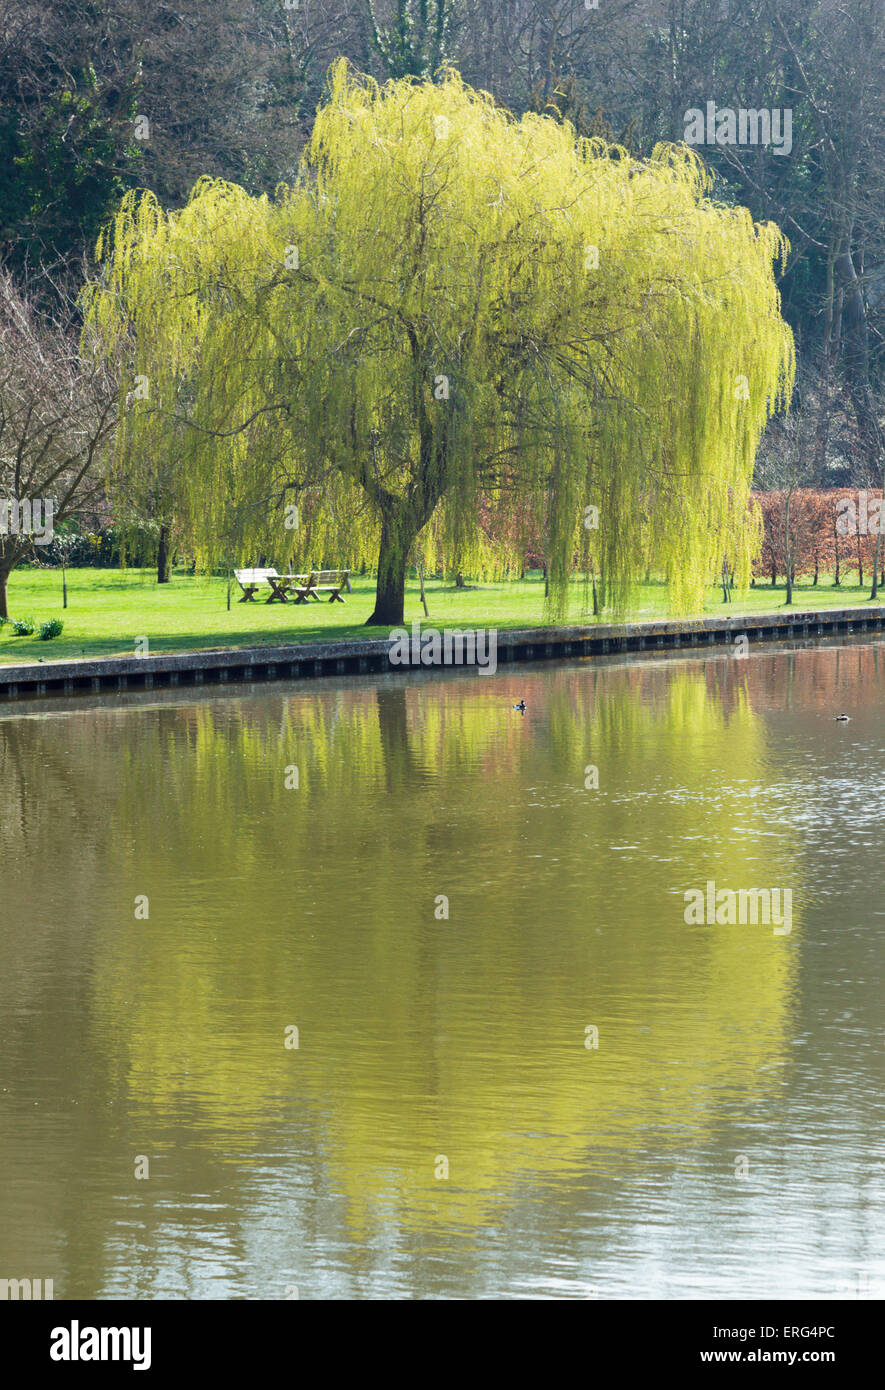 A Weeping Willow tree reflected in the River Thames near Henley on Thames - Stock Image